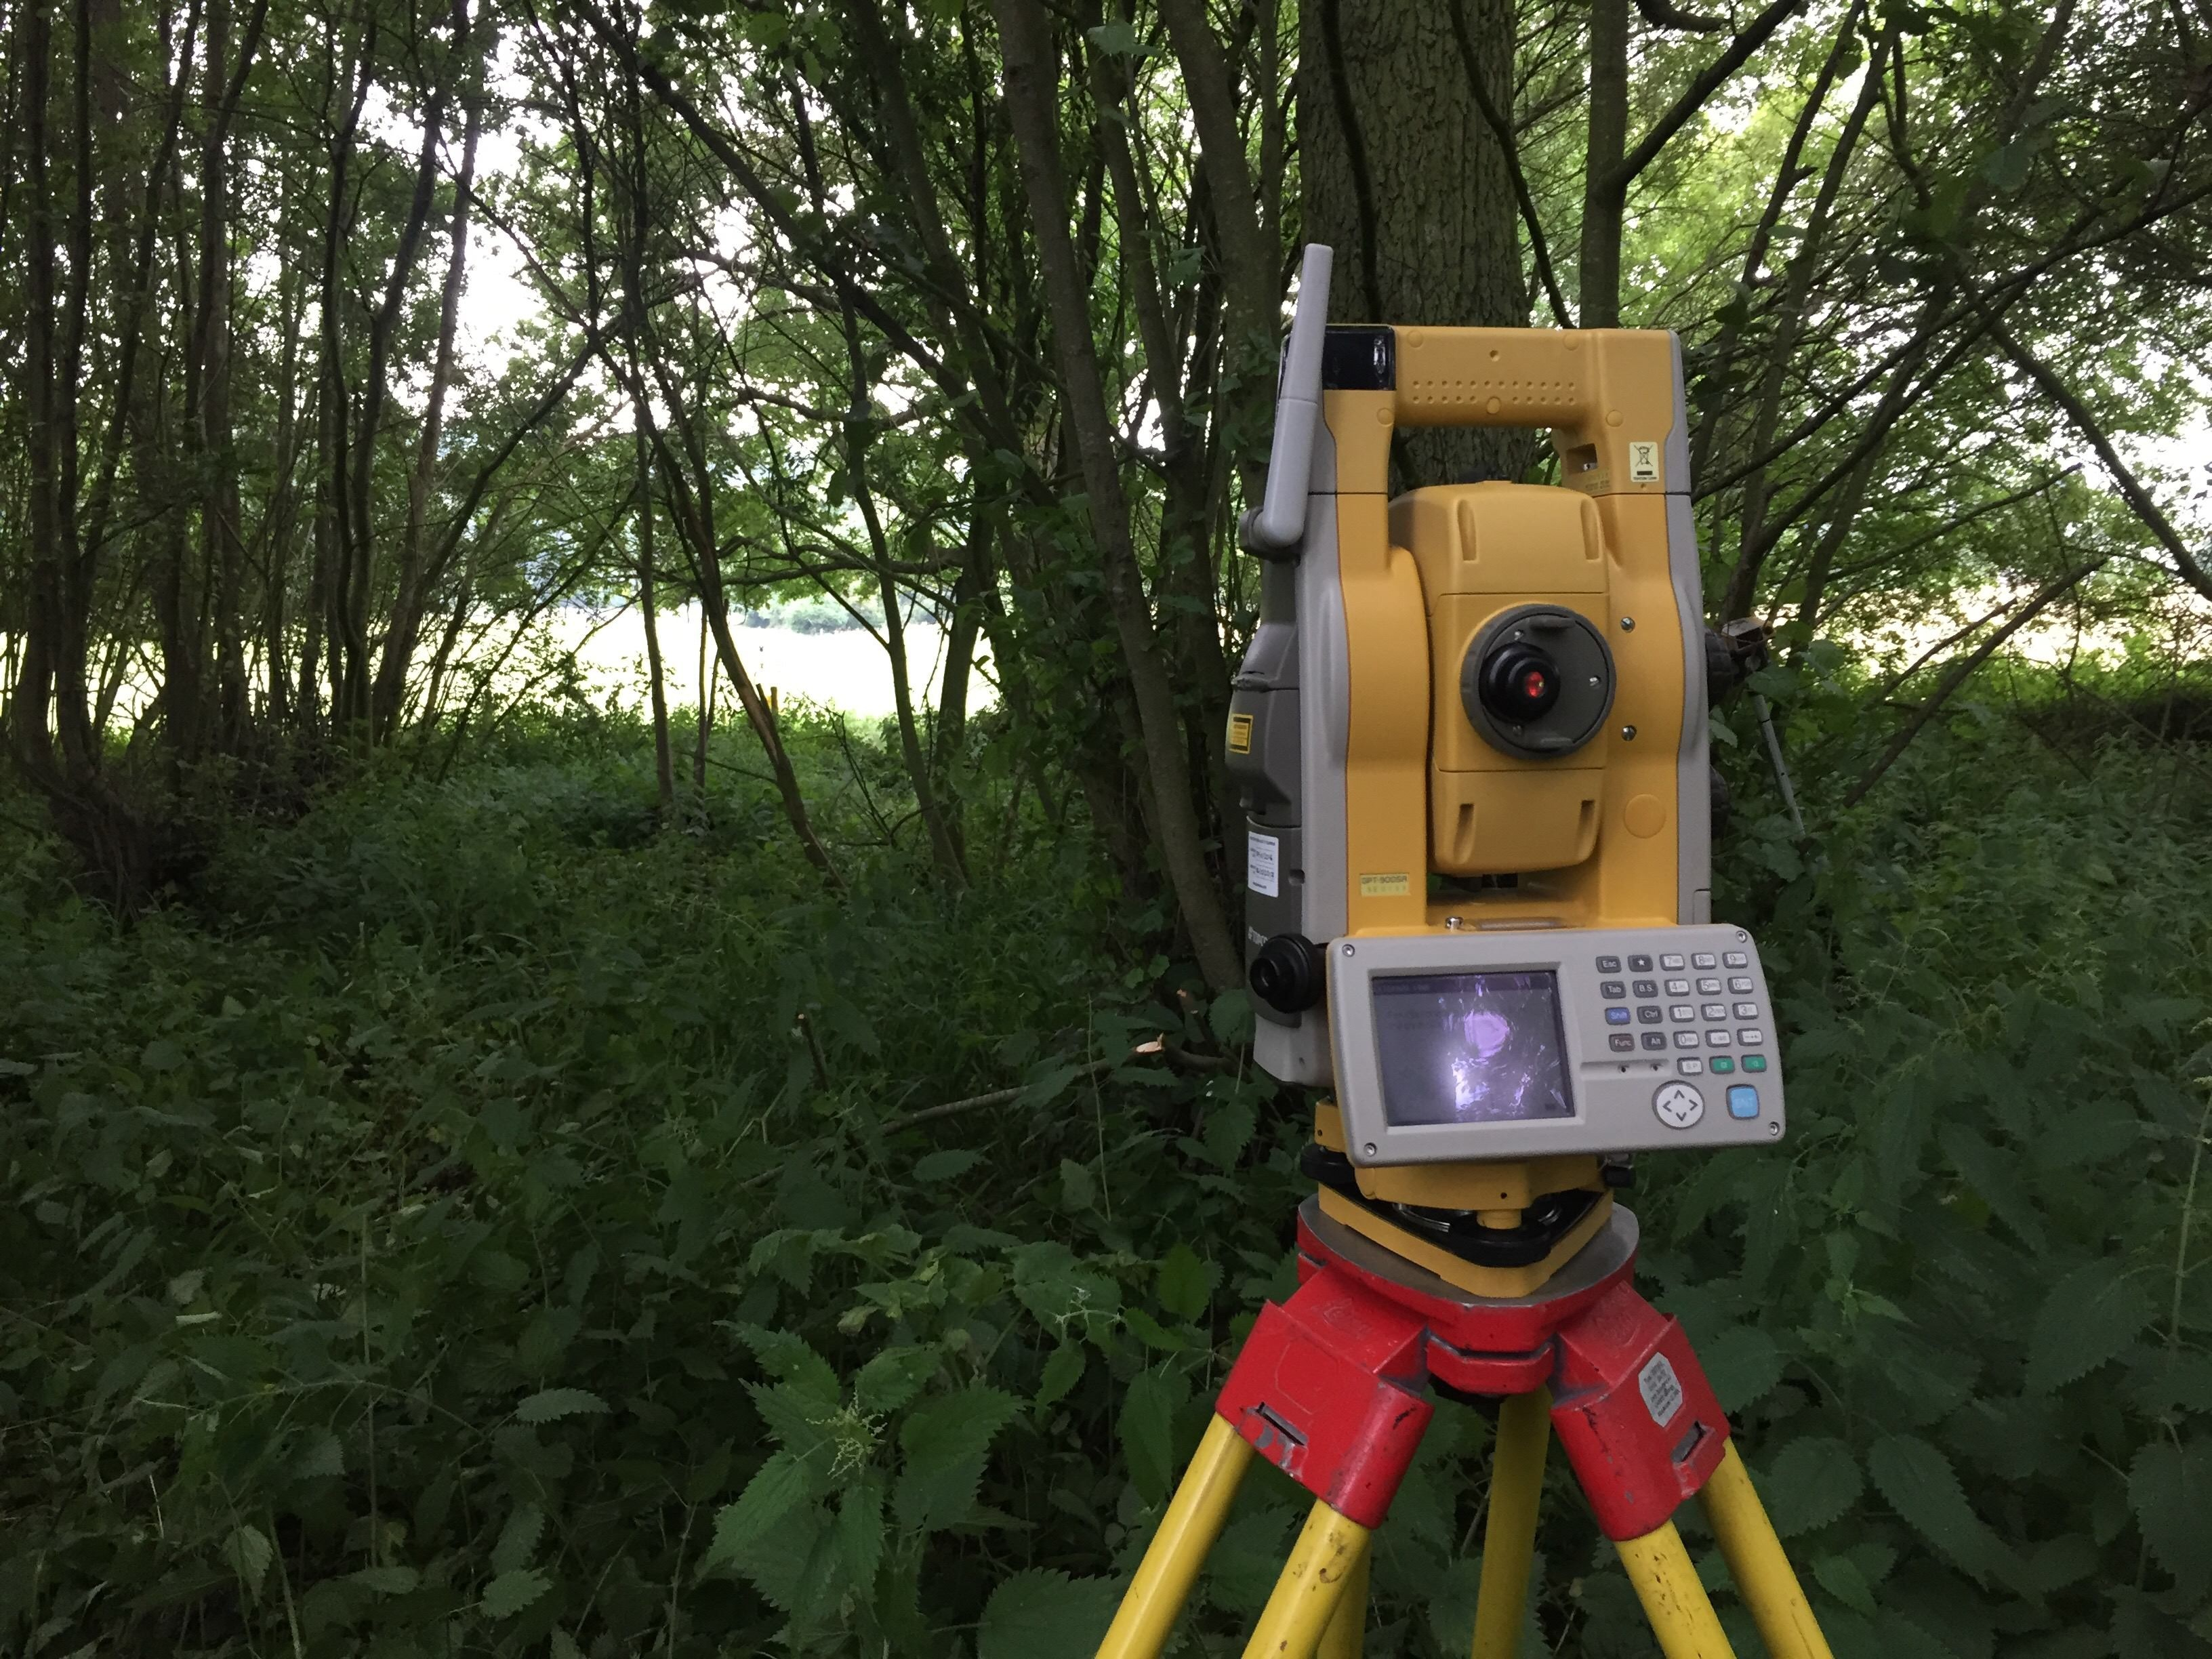 When the GNSS couldnt receive satellite data the Total Station came out